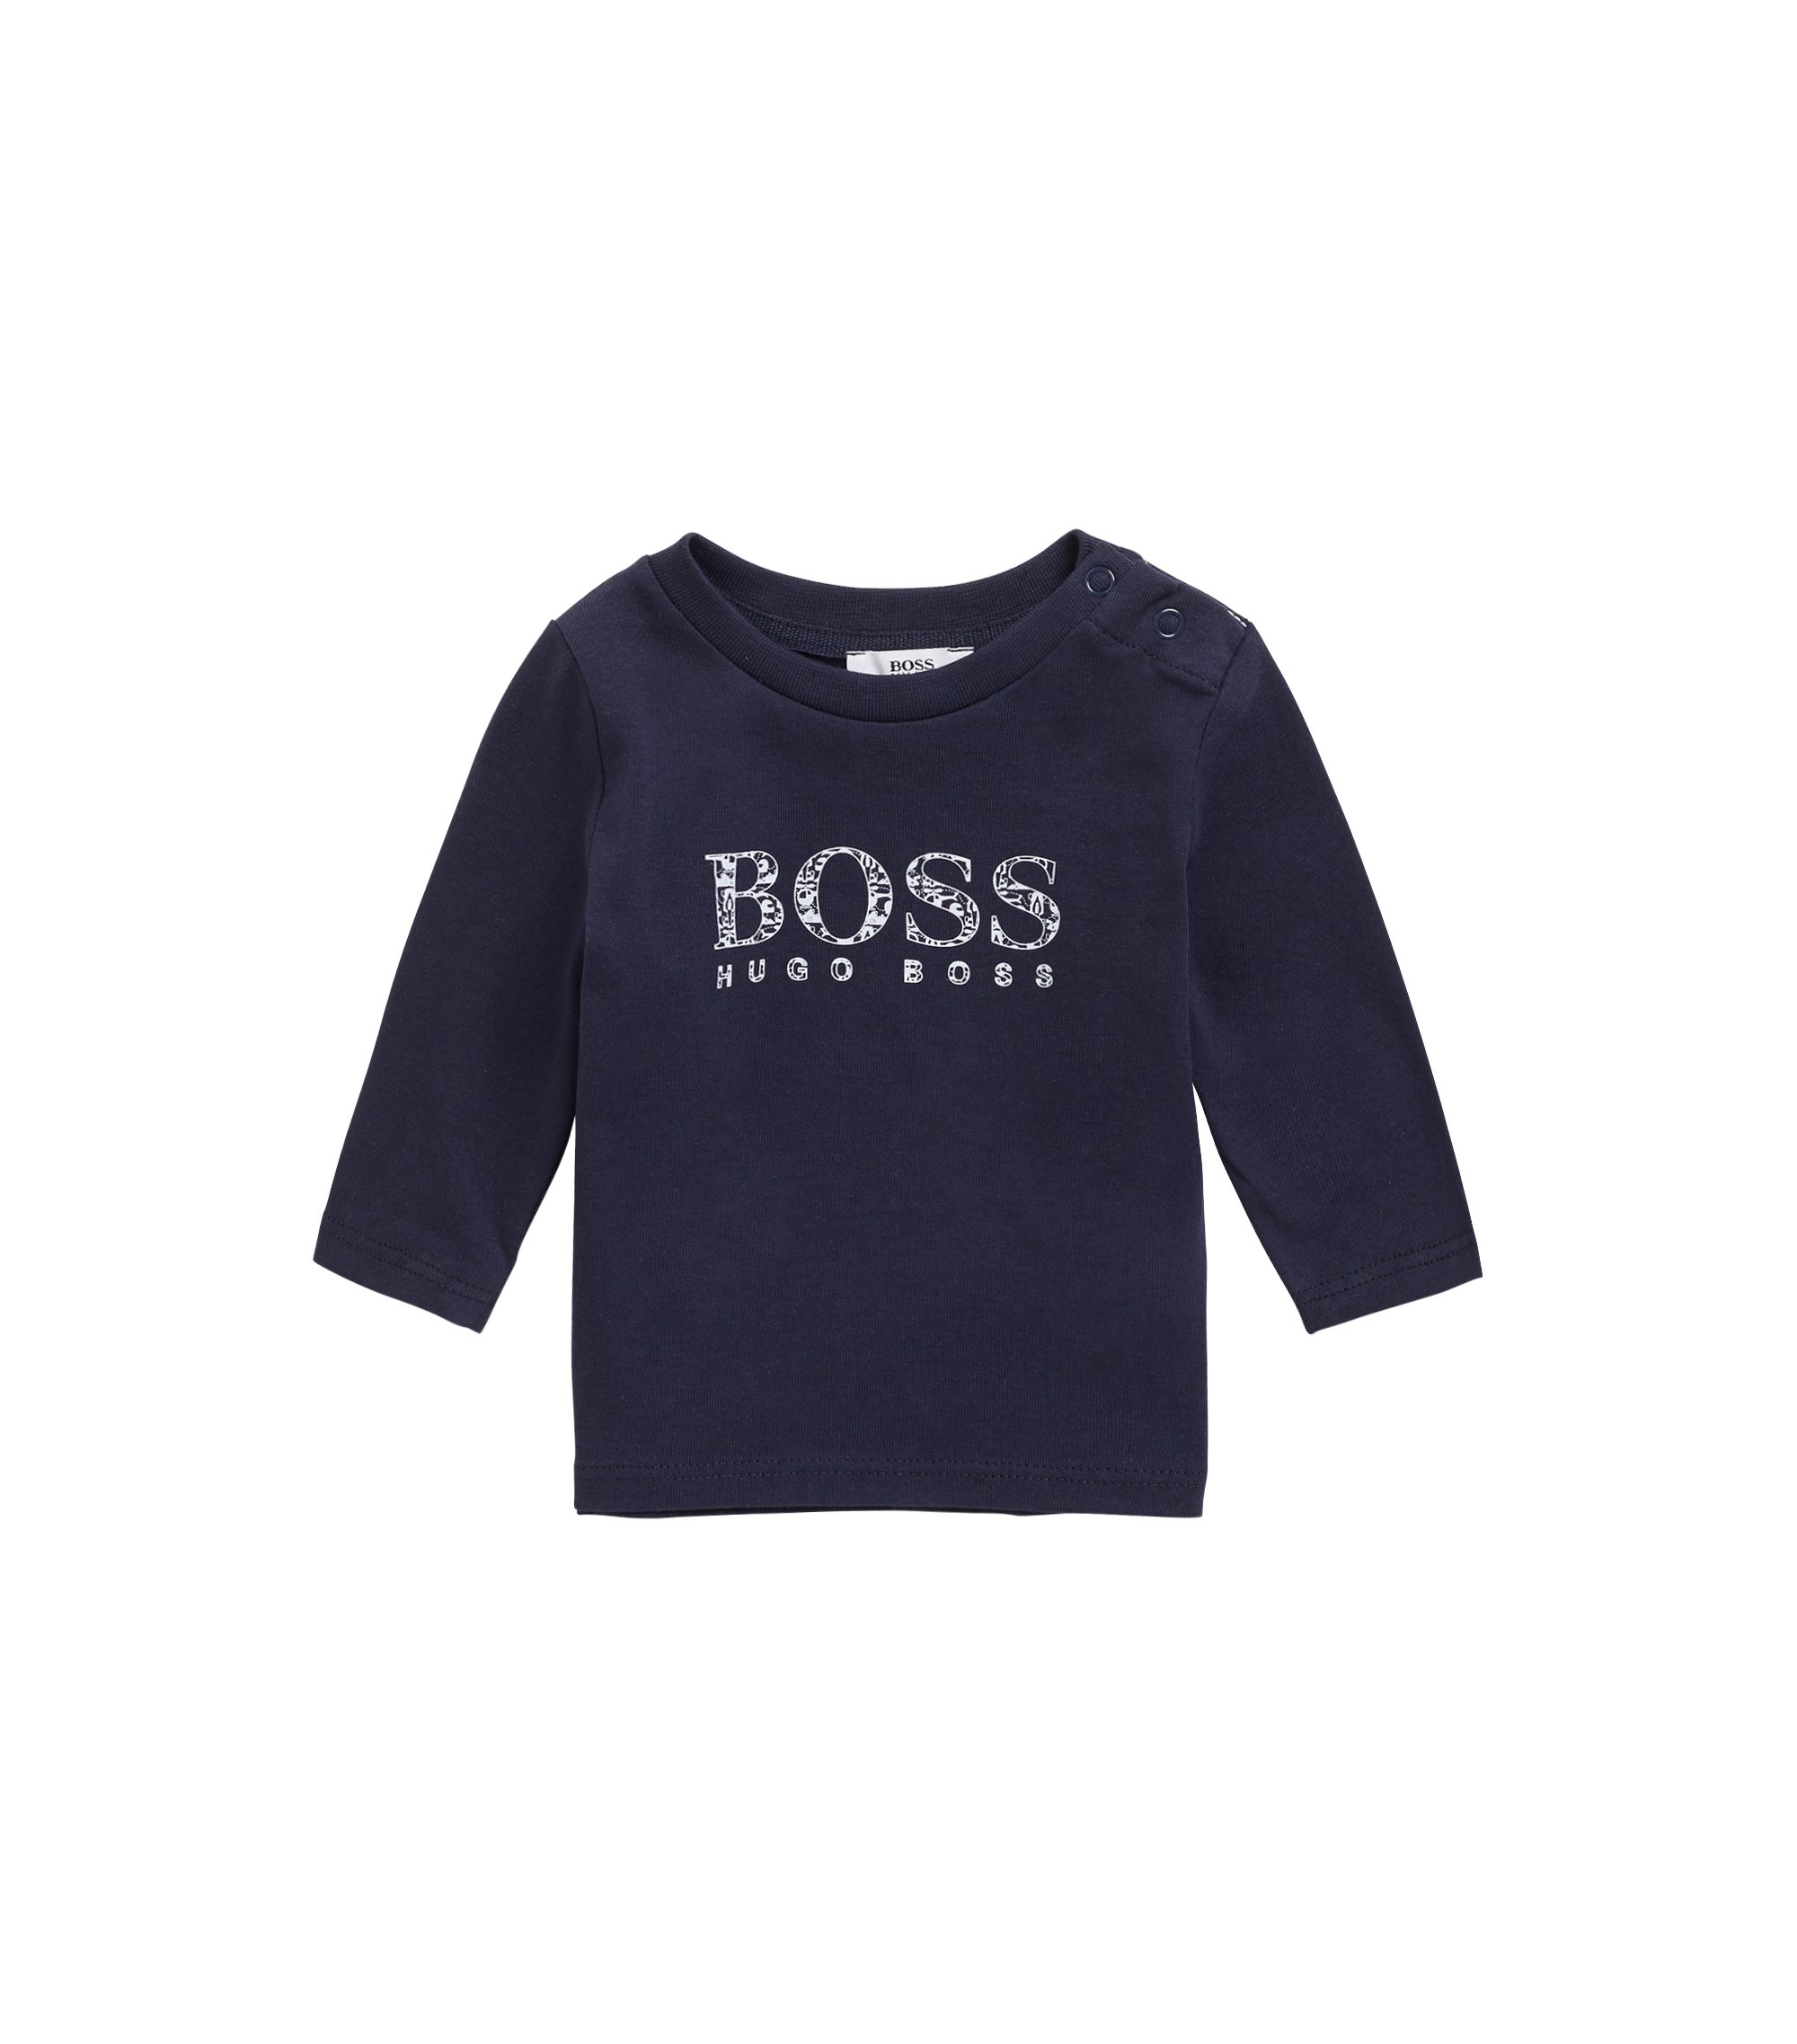 Baby T-shirt in cotton jersey with logo print, Dark Blue